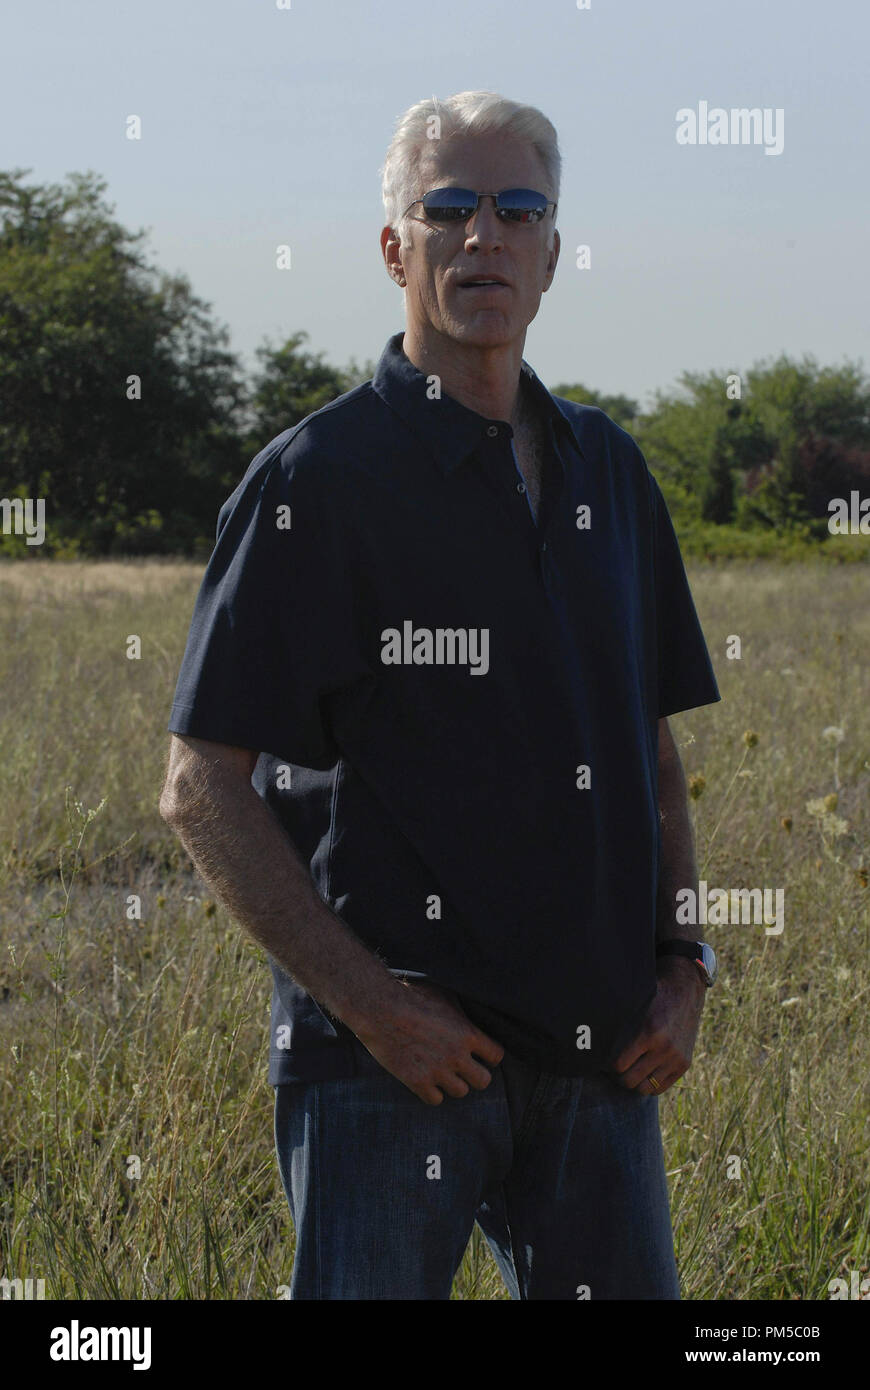 Studio Publicity Still from 'Damages' Ted Danson 2007   File Reference # 30738825THA  For Editorial Use Only -  All Rights Reserved - Stock Image